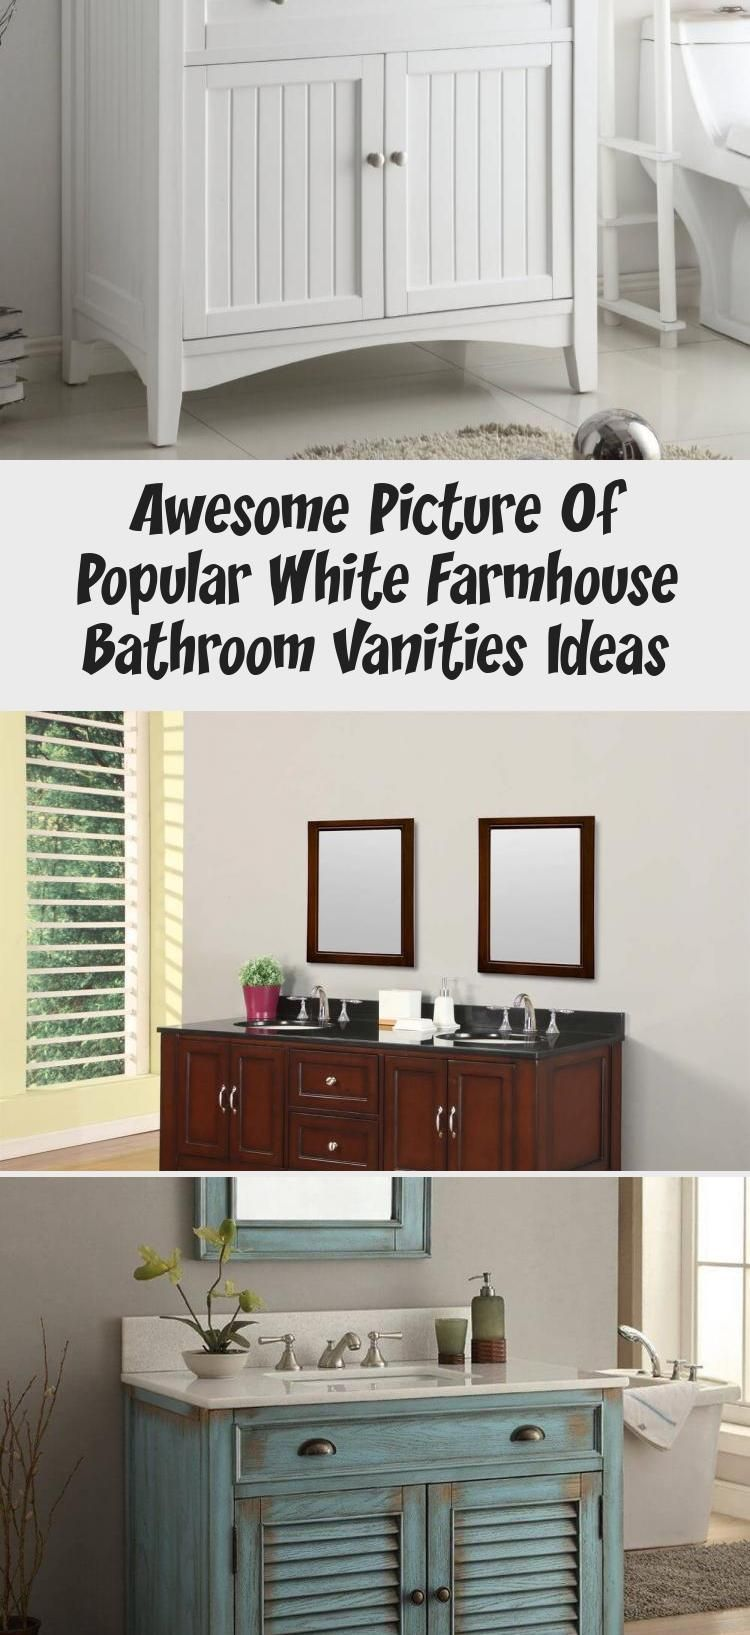 Apron Sink Bathroom Vanity in 2020 (With images